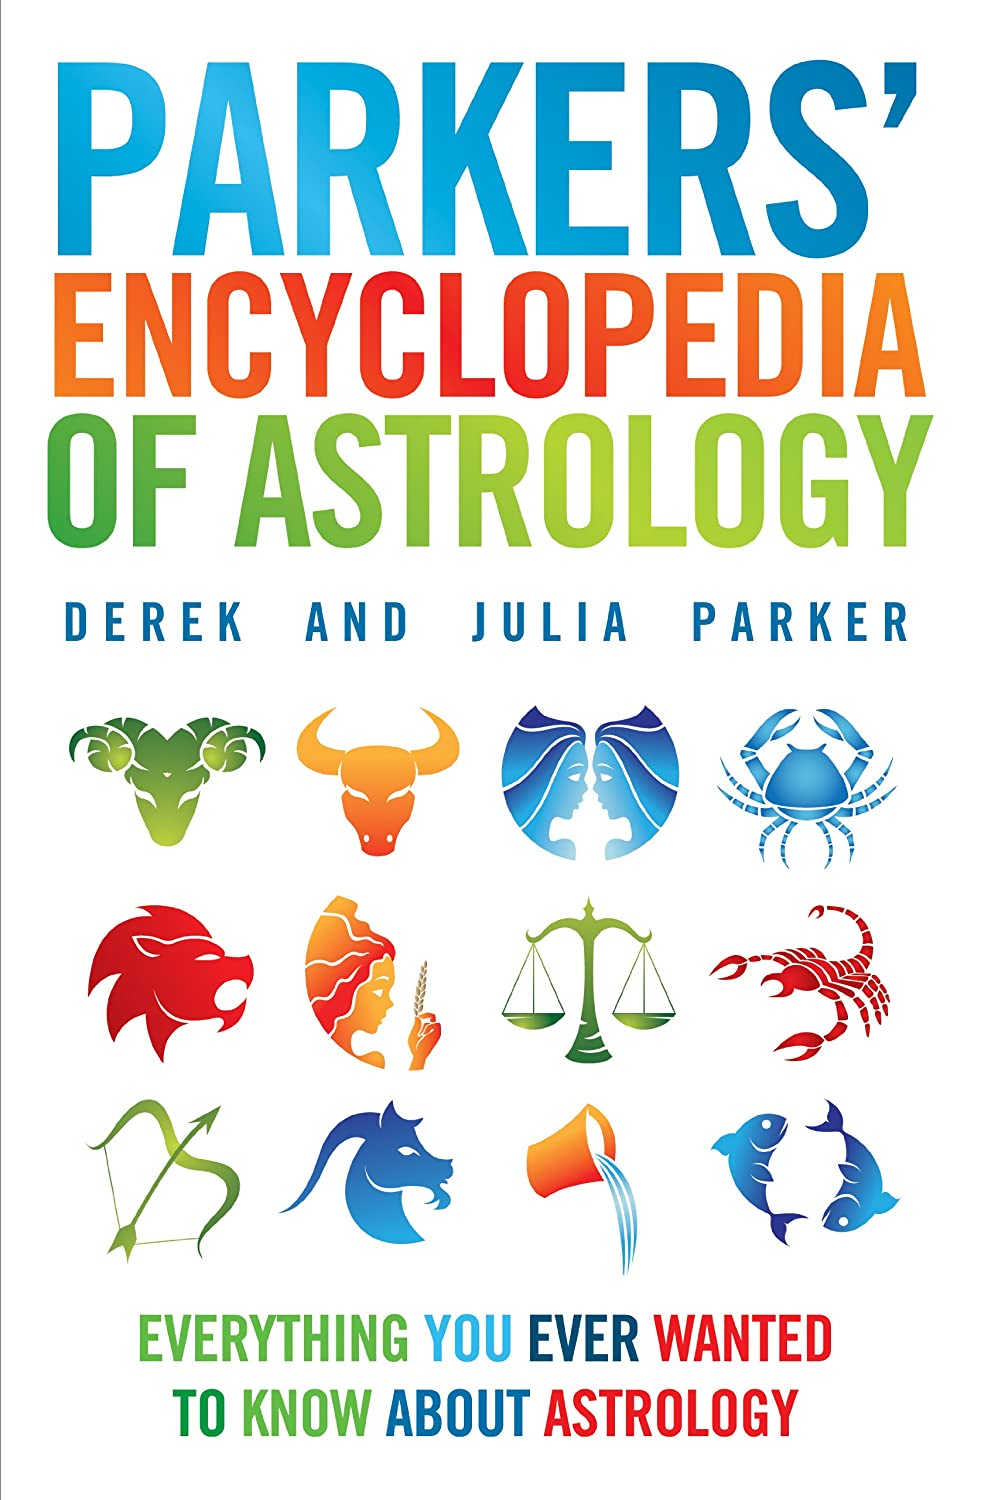 Parkers' Encyclopedia of Astrology - Derek and Julia Parker